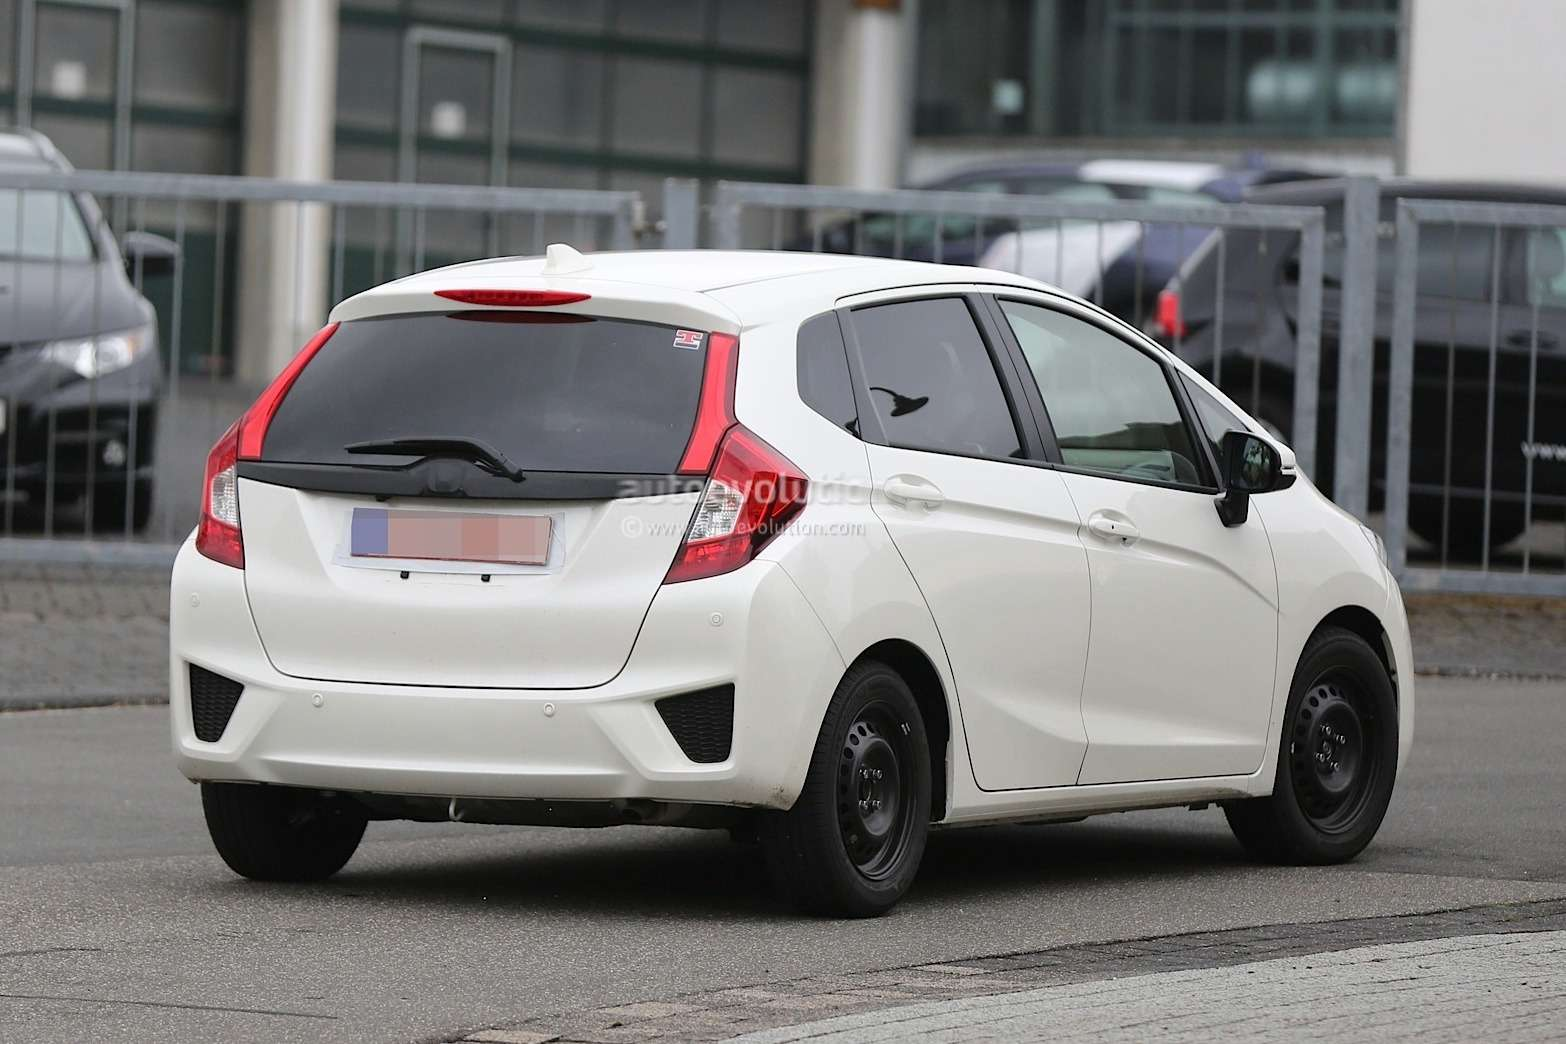 spyshots-all-new-2015-honda-jazz-testing-in-europe-for-the-first-time_9